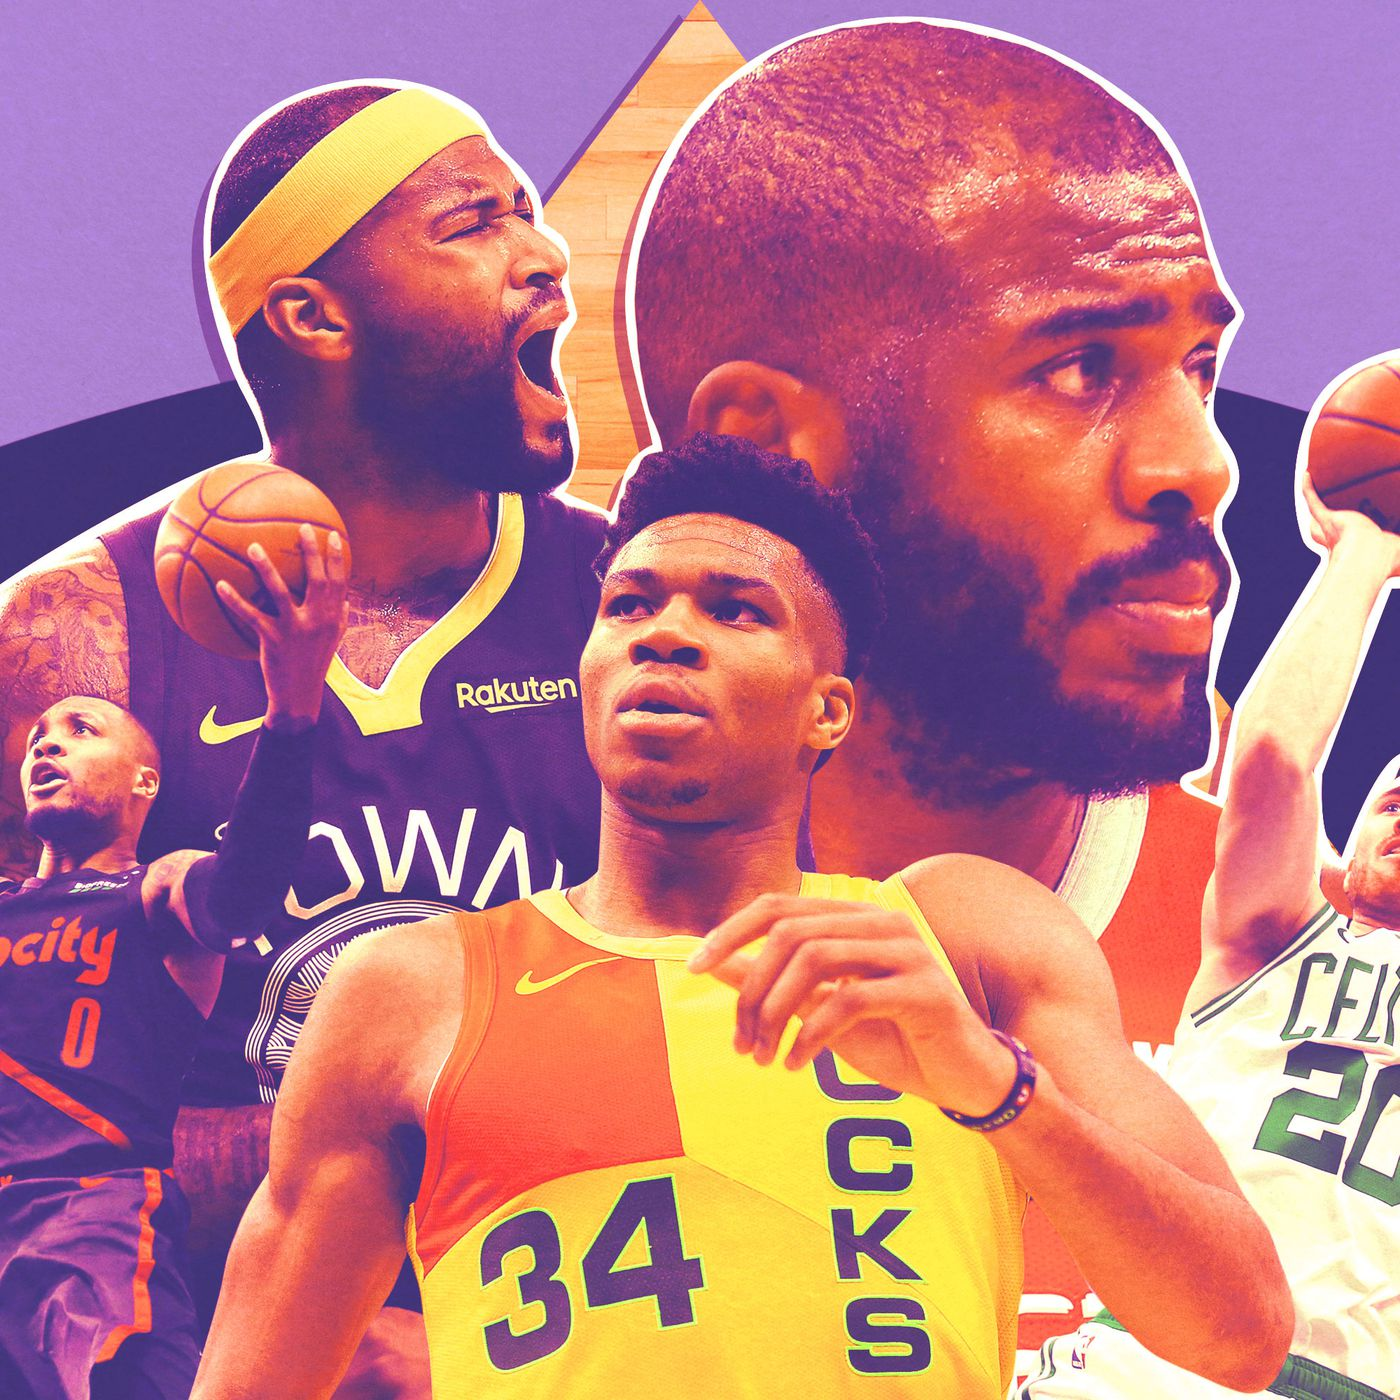 a85b09eb718 The Five Most Interesting Players of the 2019 NBA Playoffs - The Ringer